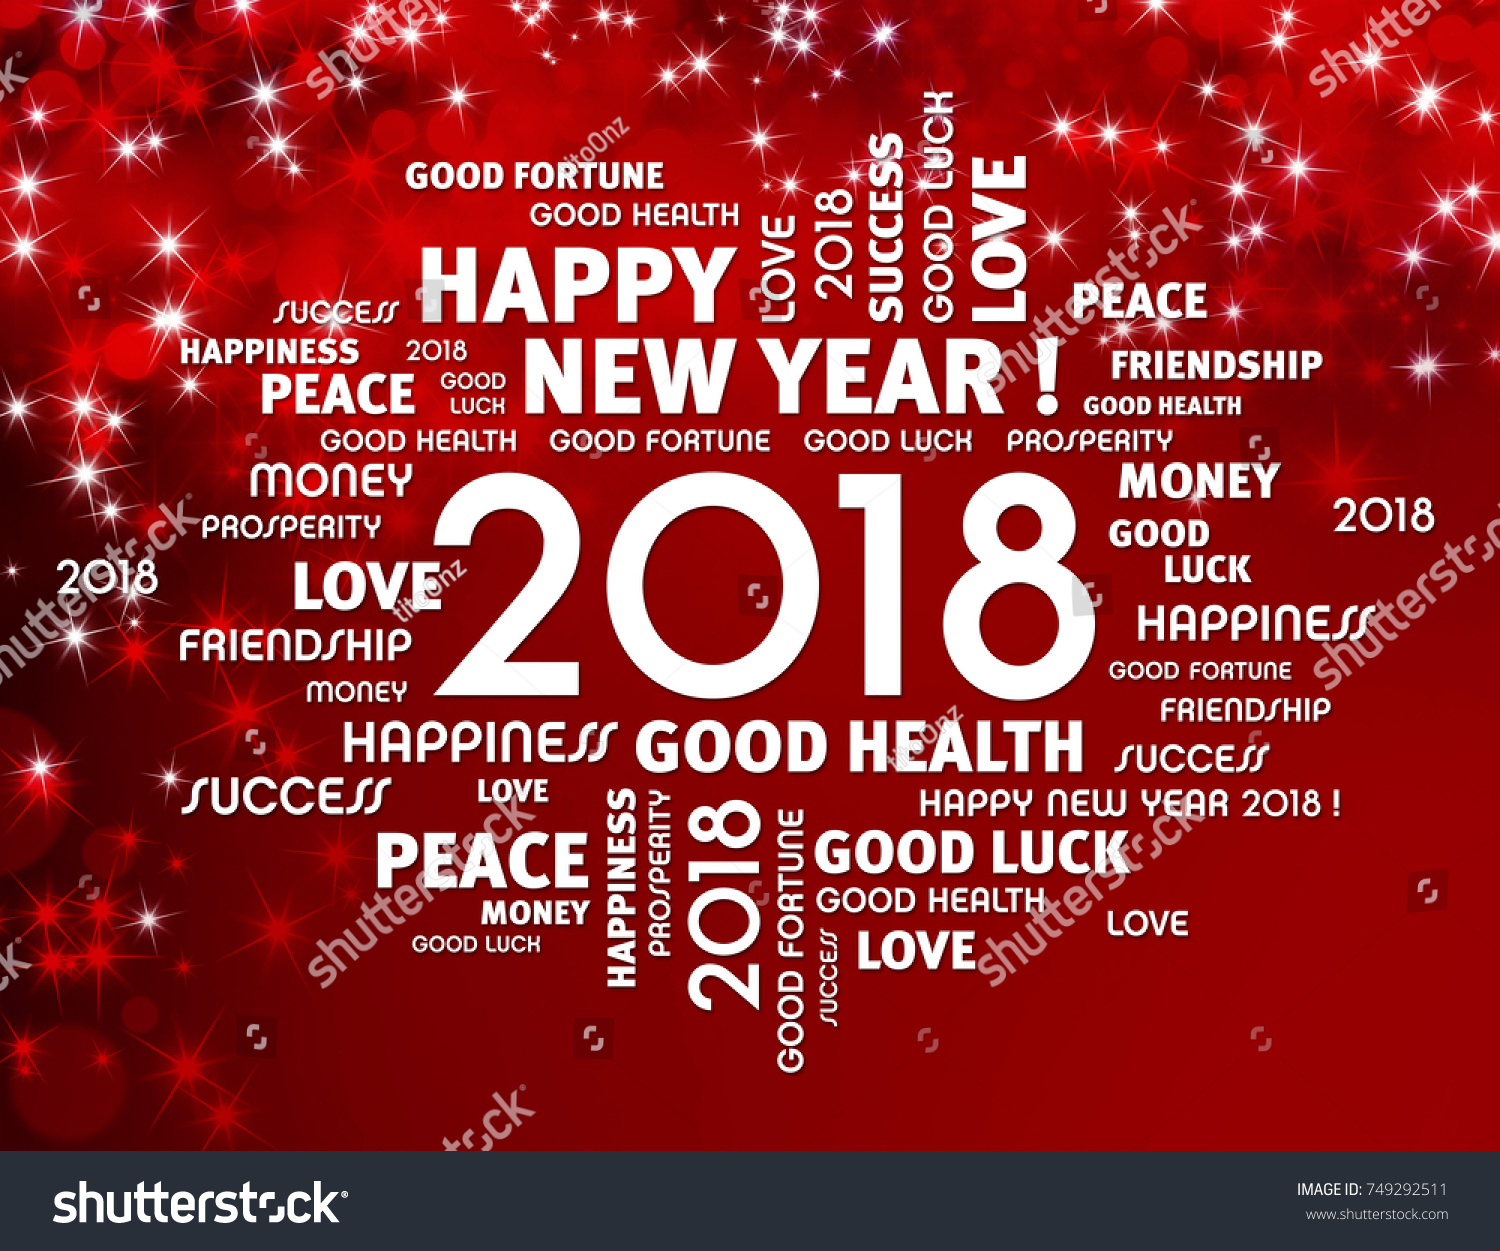 Greeting words around year 2018 typescript stock illustration greeting words around year 2018 typescript on a festive red background kristyandbryce Choice Image